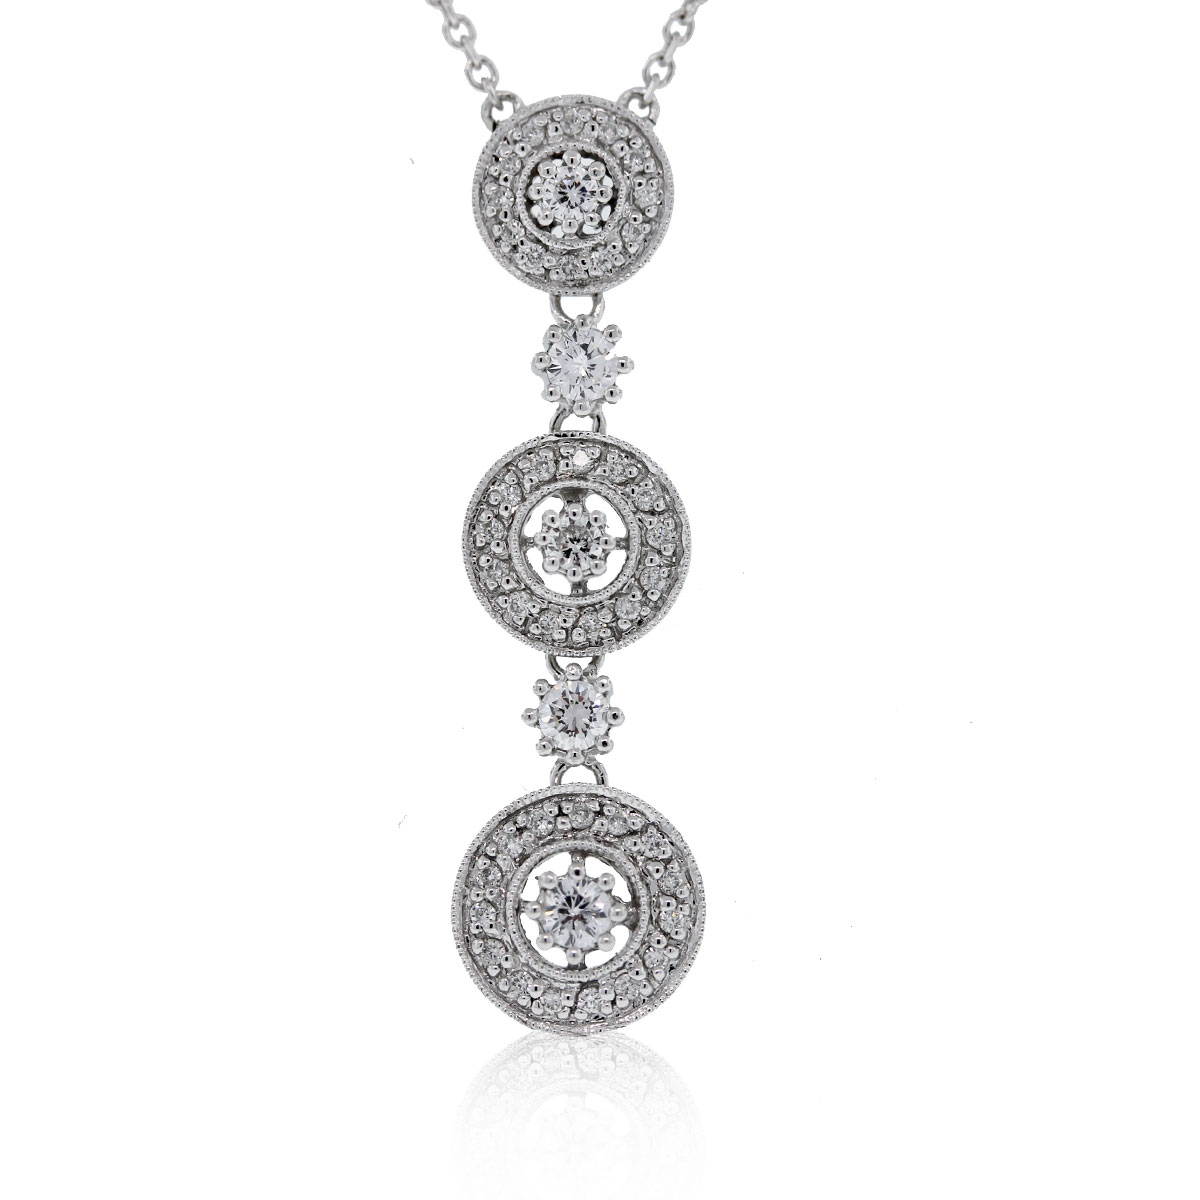 Have you viewed this 14kt White Gold Diamond Drop Pendant on 14k White Gold Chain?